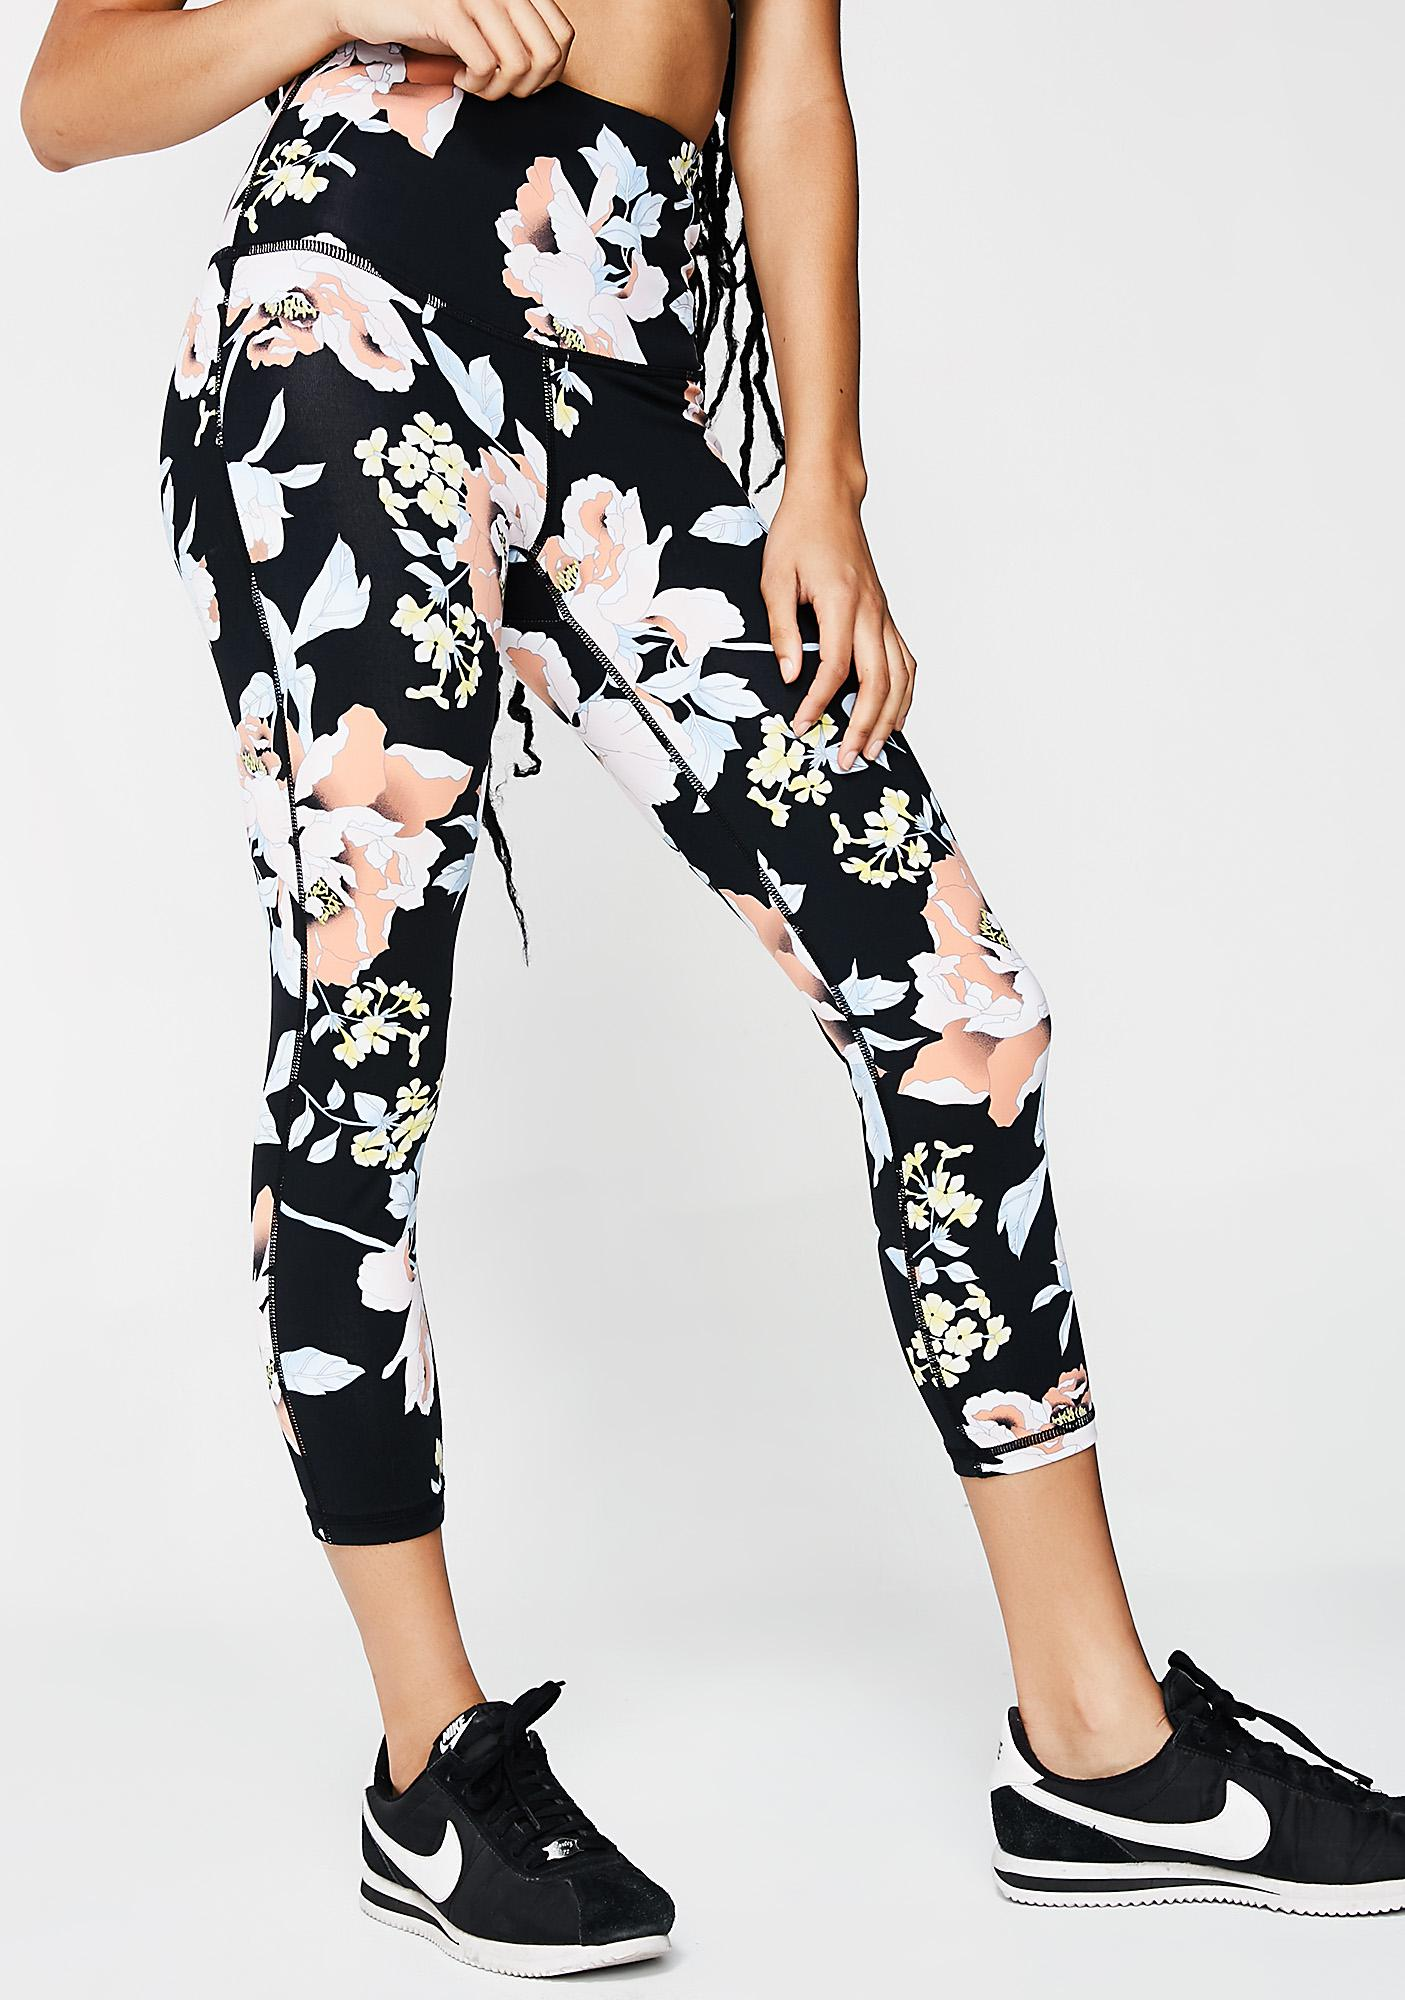 Tea Party Leggings